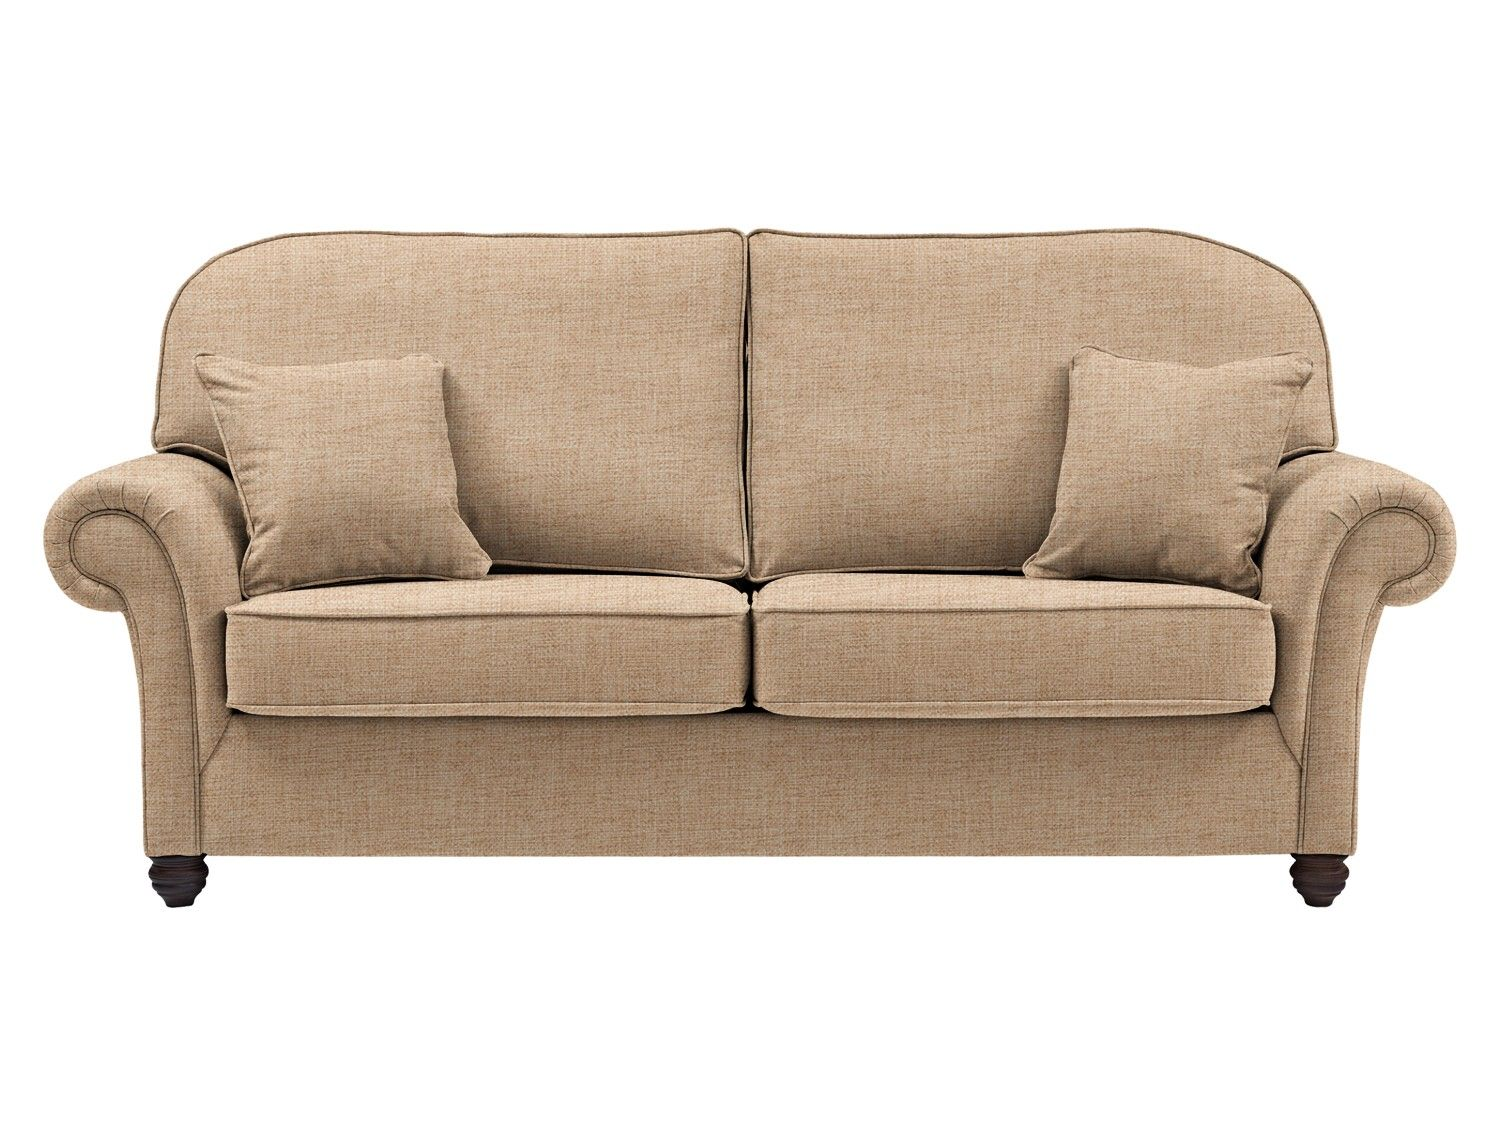 The Wardour 2 Seater Sofa Bed Willow Hall